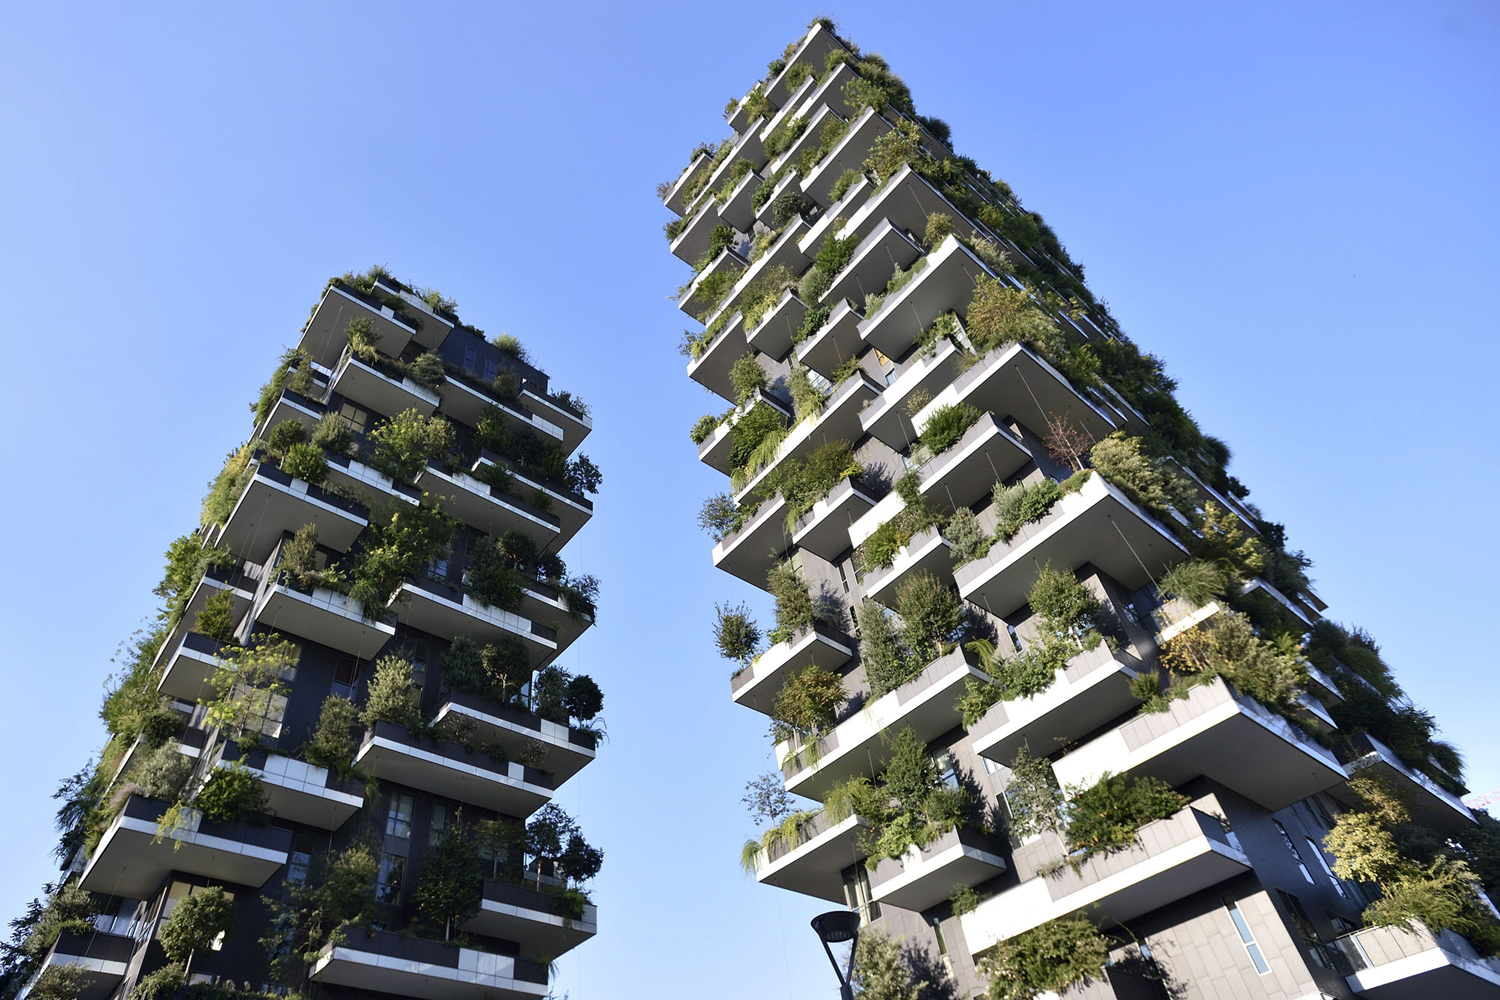 """The Bosco Verticale, or """"vertical forest,"""" towers in Milan, Italy; Flavio Lo Scalzo [1500 x 1000]"""